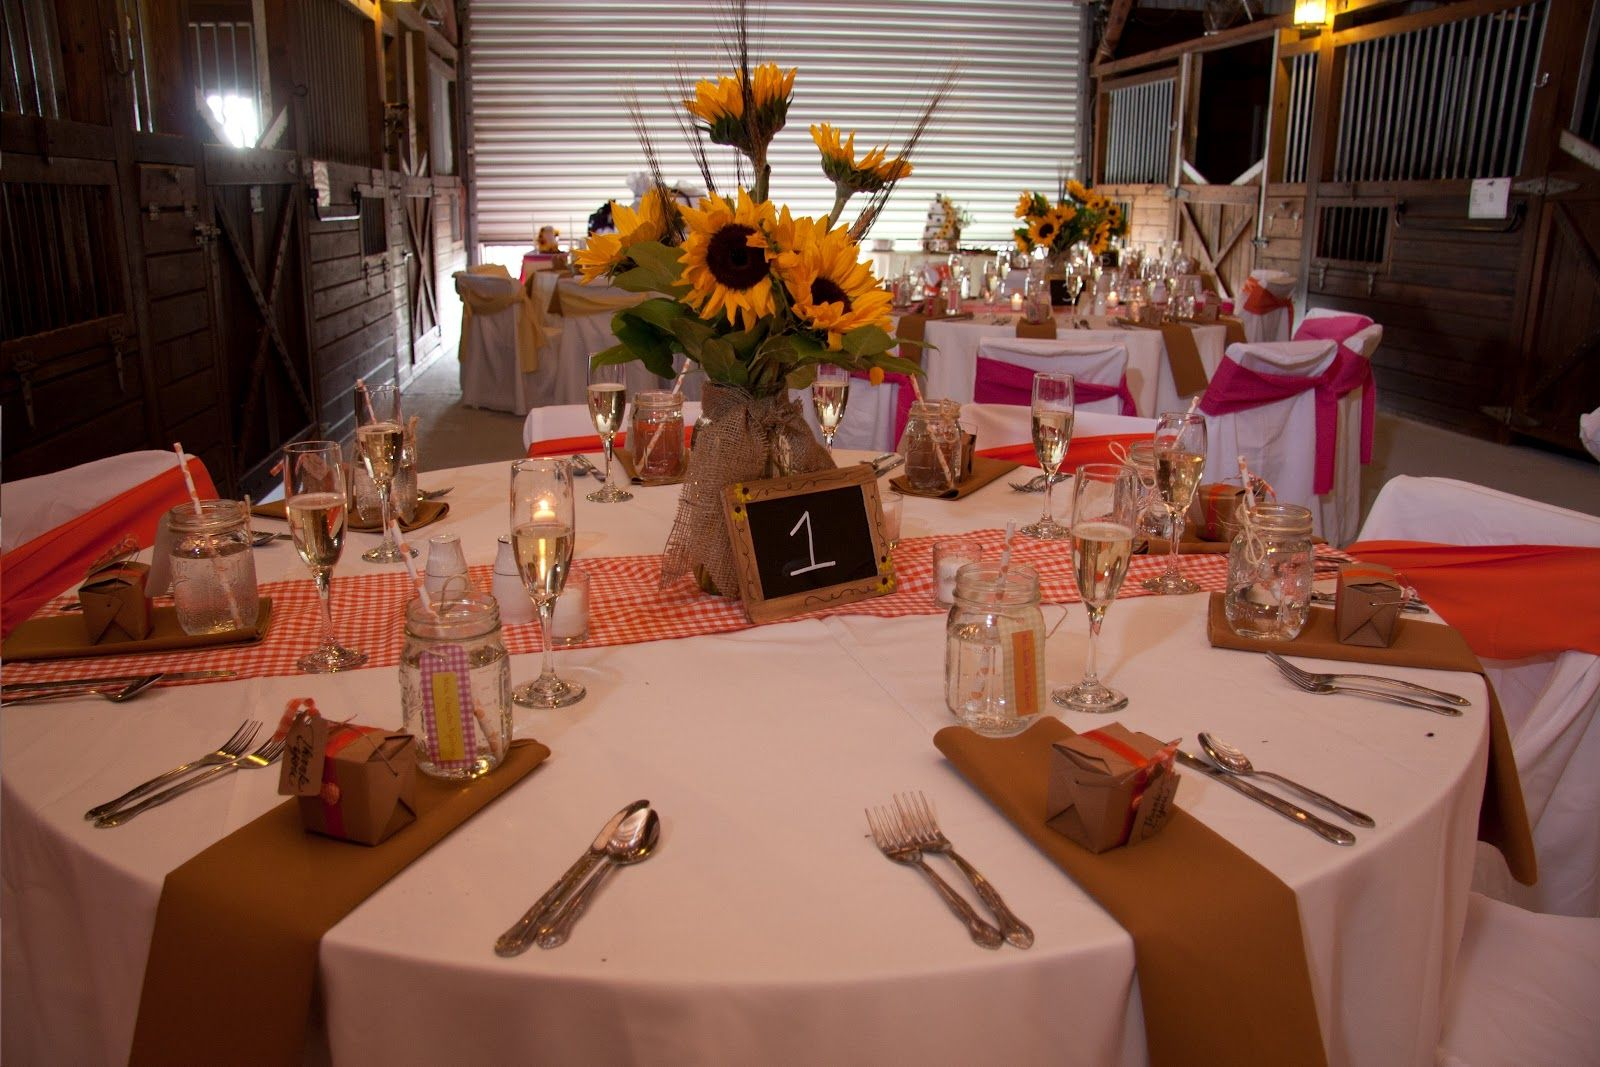 Wedding dinner decoration ideas  Fall Rehearsal Dinner Centerpieces  centerpieces and the family